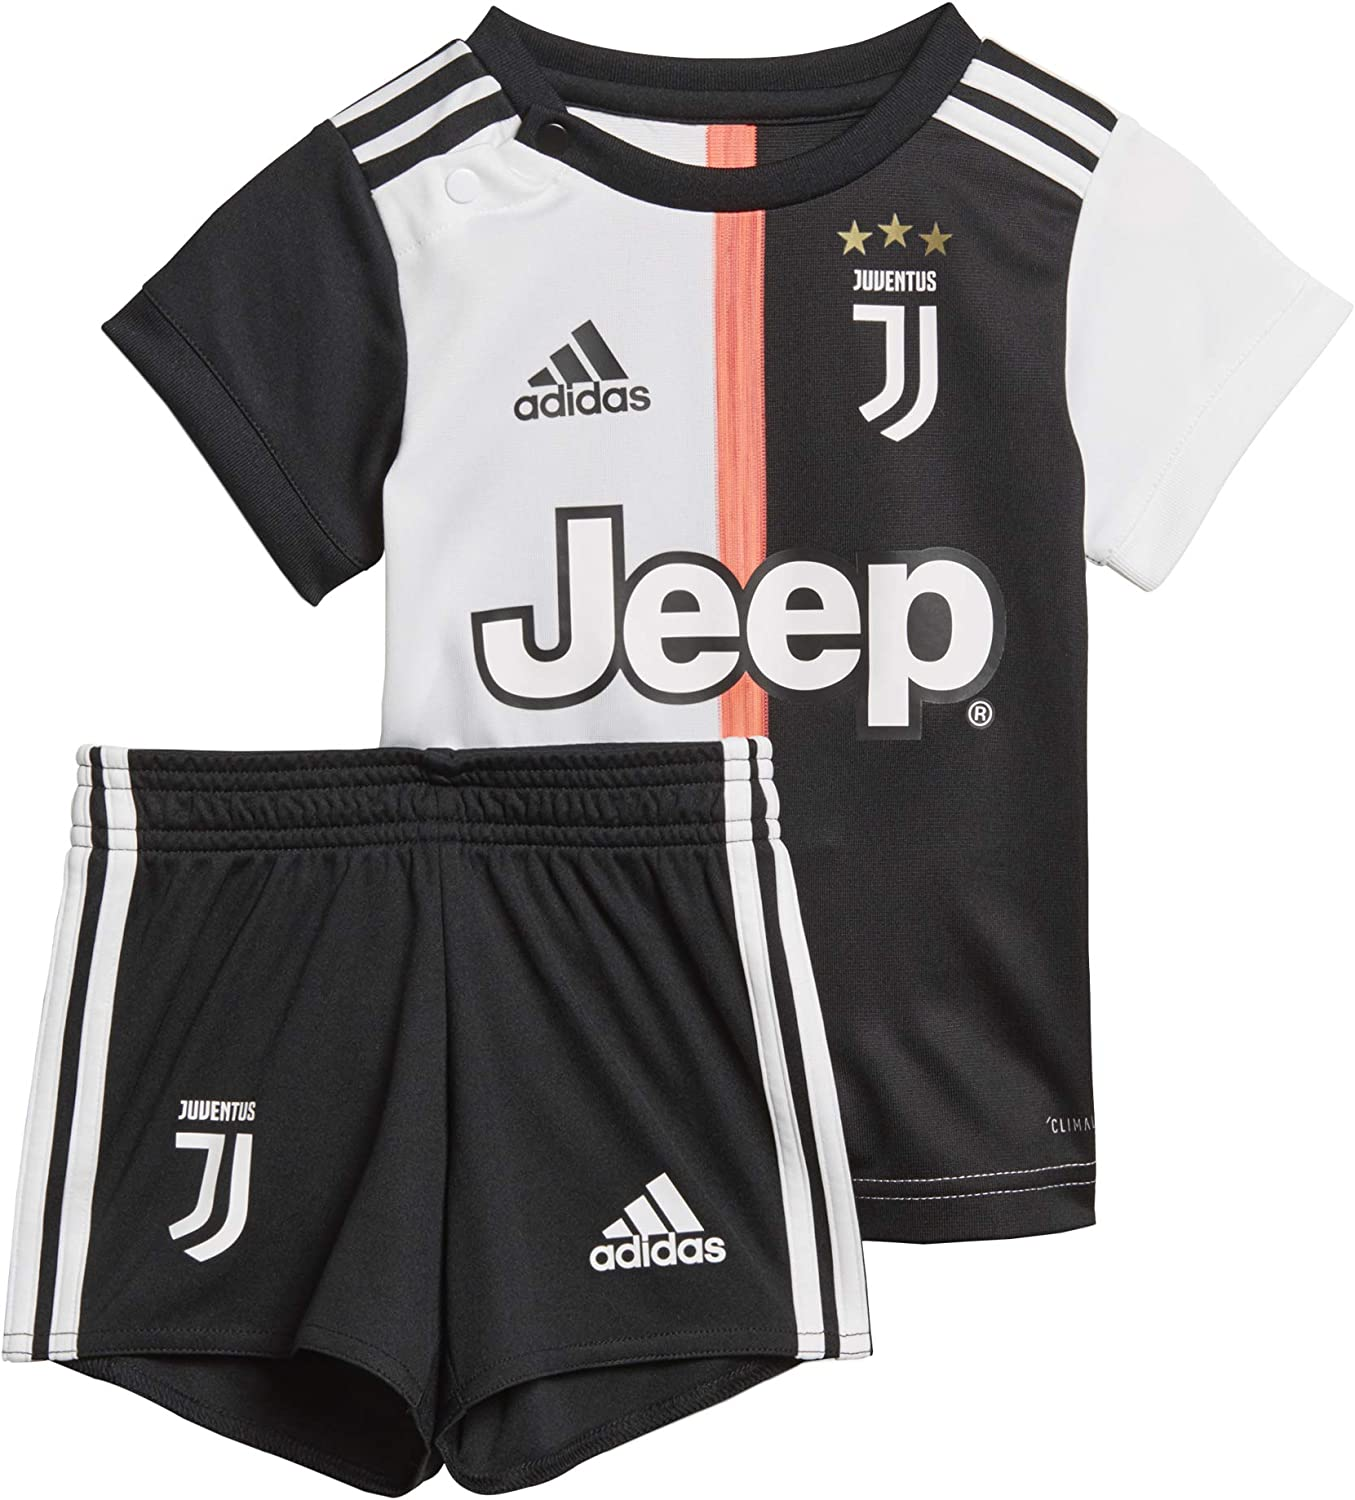 14+ Juventus Kit 2020